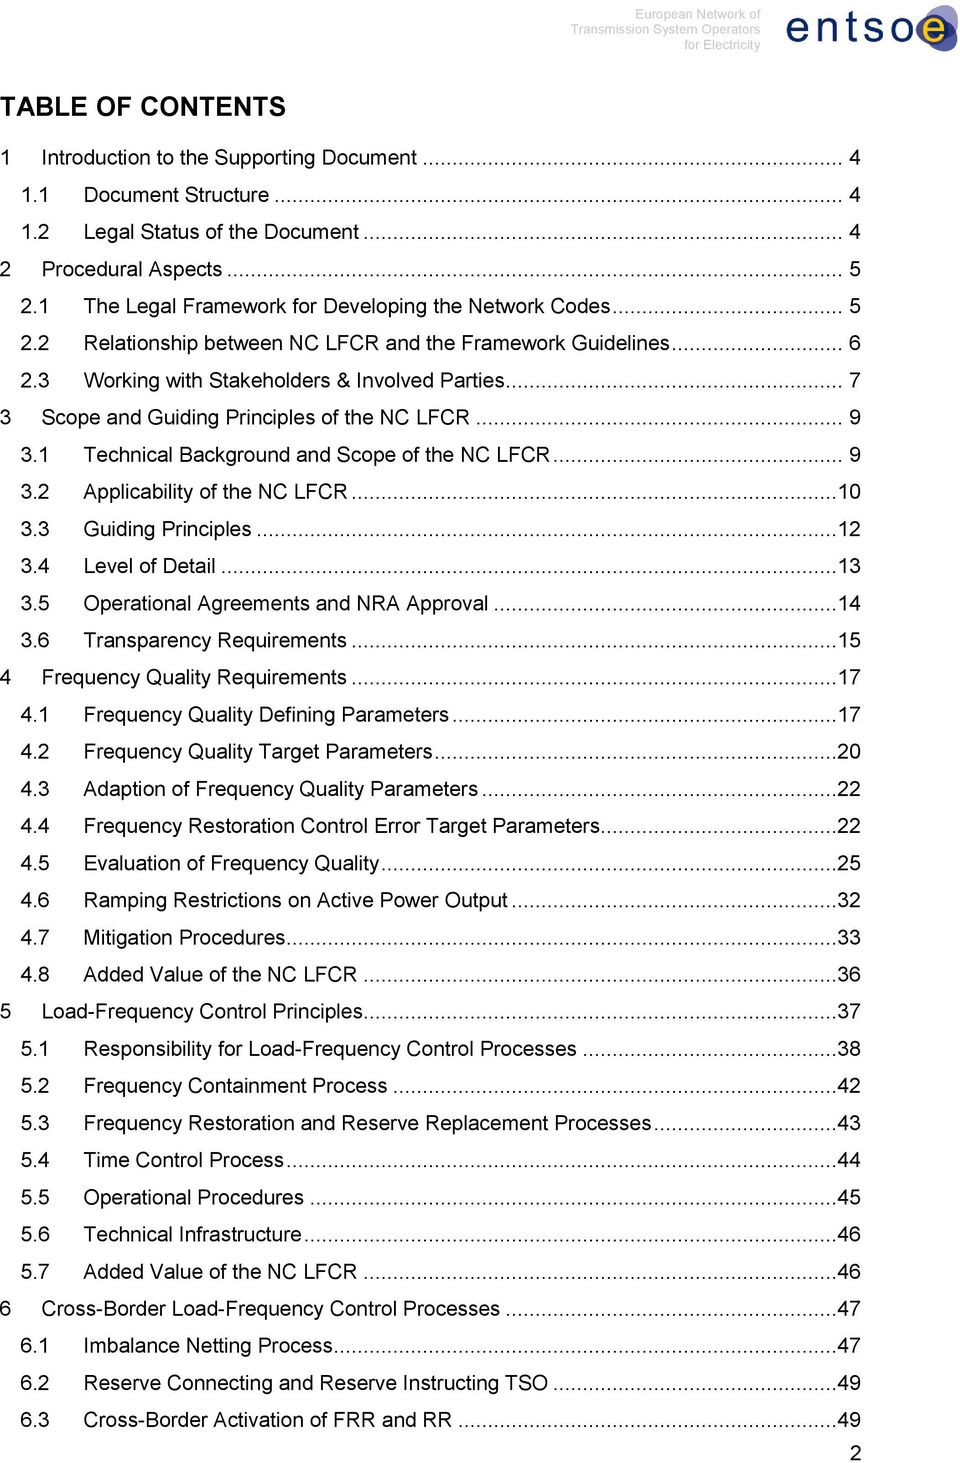 .. 7 3 Scope and Guiding Principles of the NC LFCR... 9 3.1 Technical Background and Scope of the NC LFCR... 9 3.2 Applicability of the NC LFCR...10 3.3 Guiding Principles...12 3.4 Level of Detail.